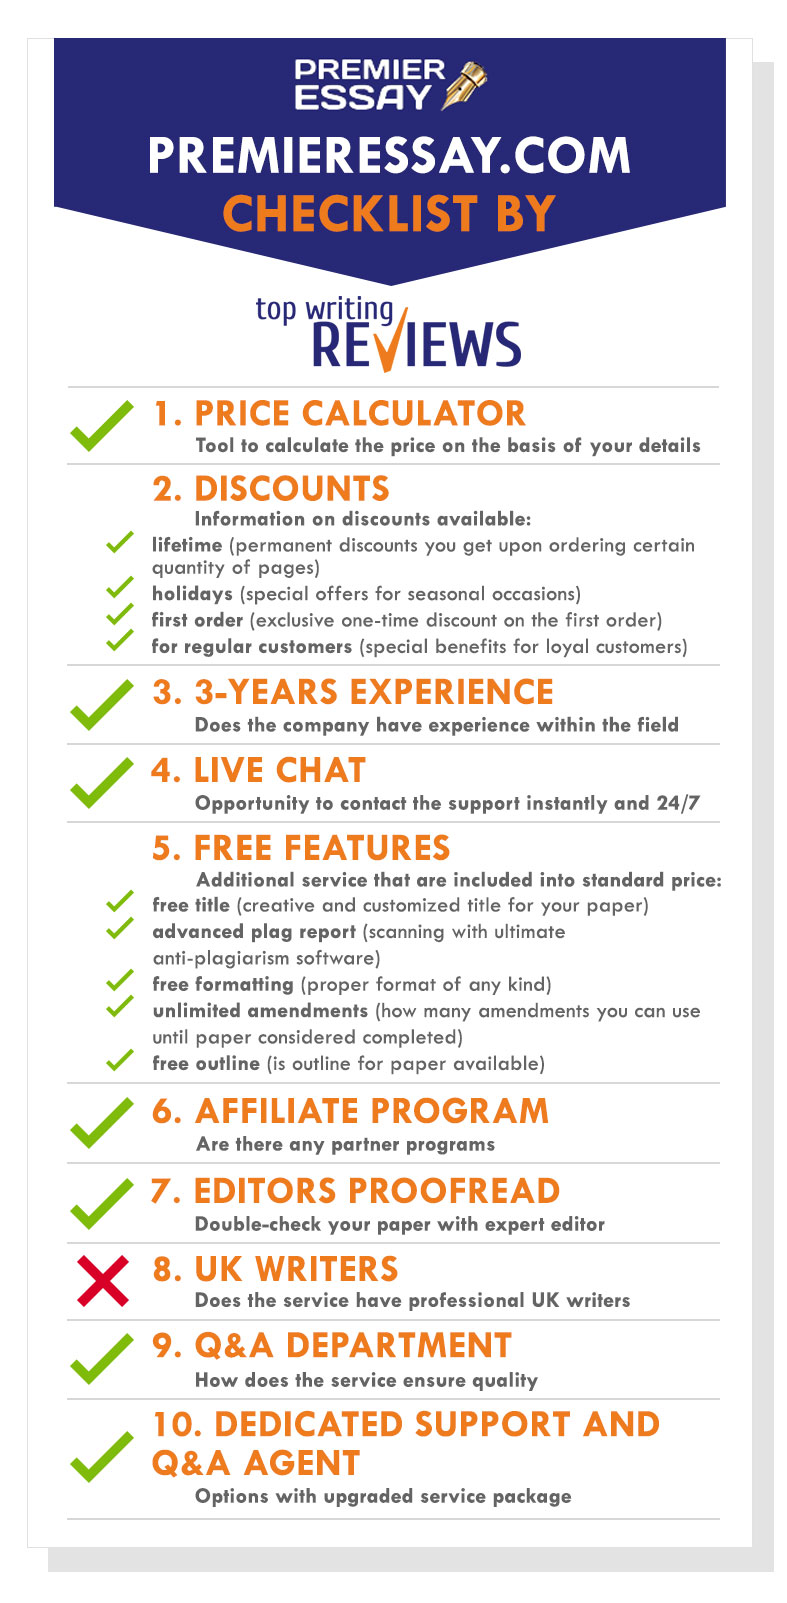 021 Essay Example Checklist Review Of Premieressay By Topwritingreviews Best Impressive Help Writing Services Uk Reviews Service Full